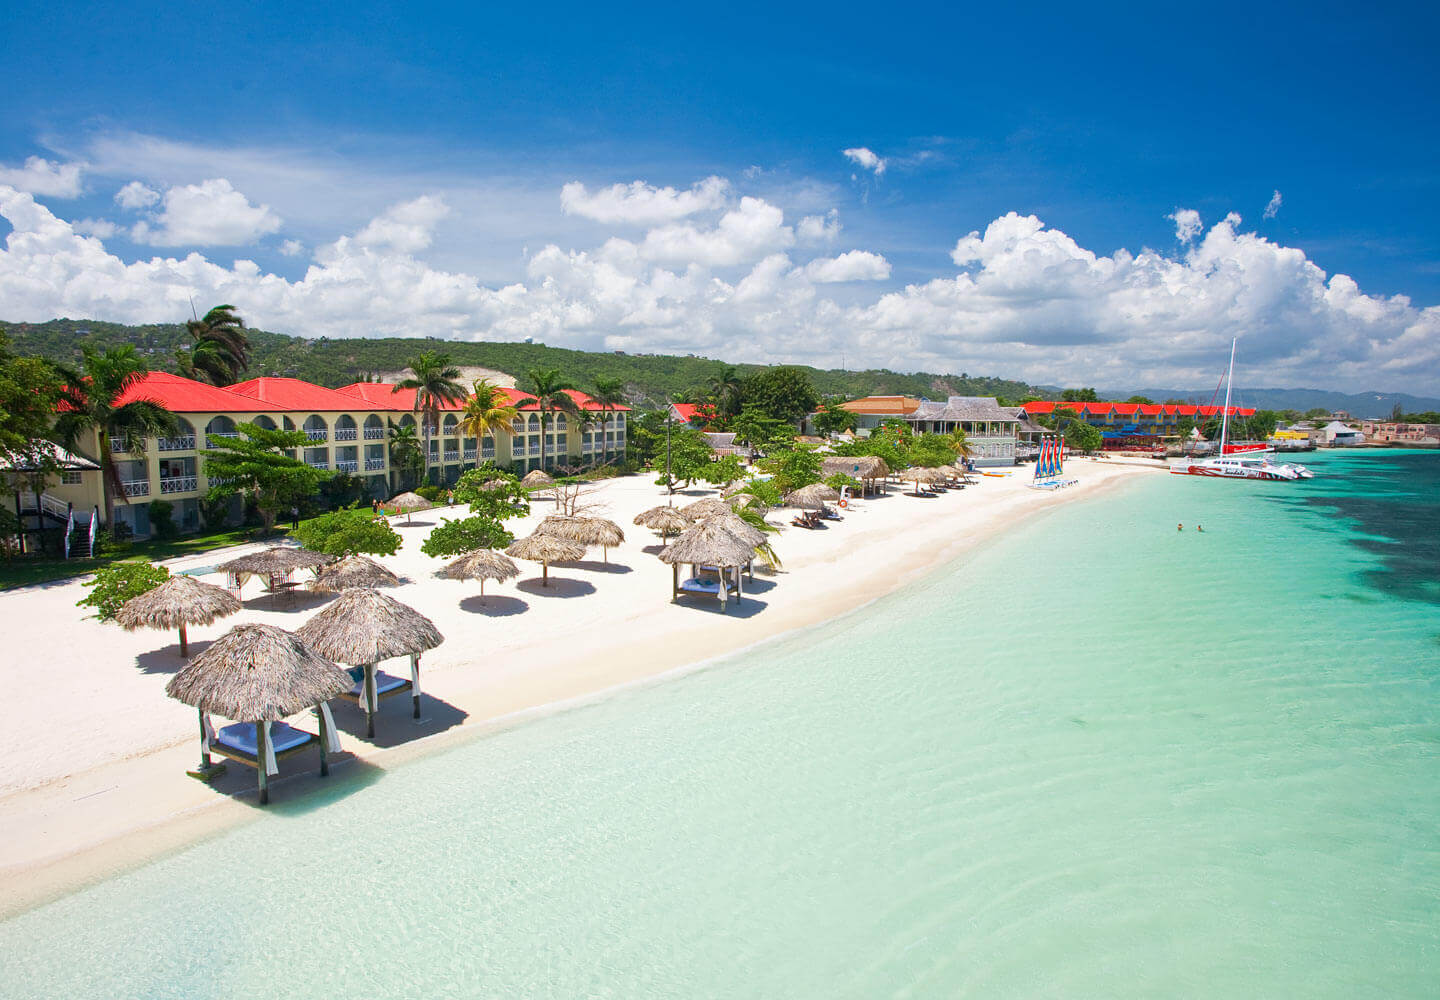 Sandals Montego Bay - Luxury Vacations